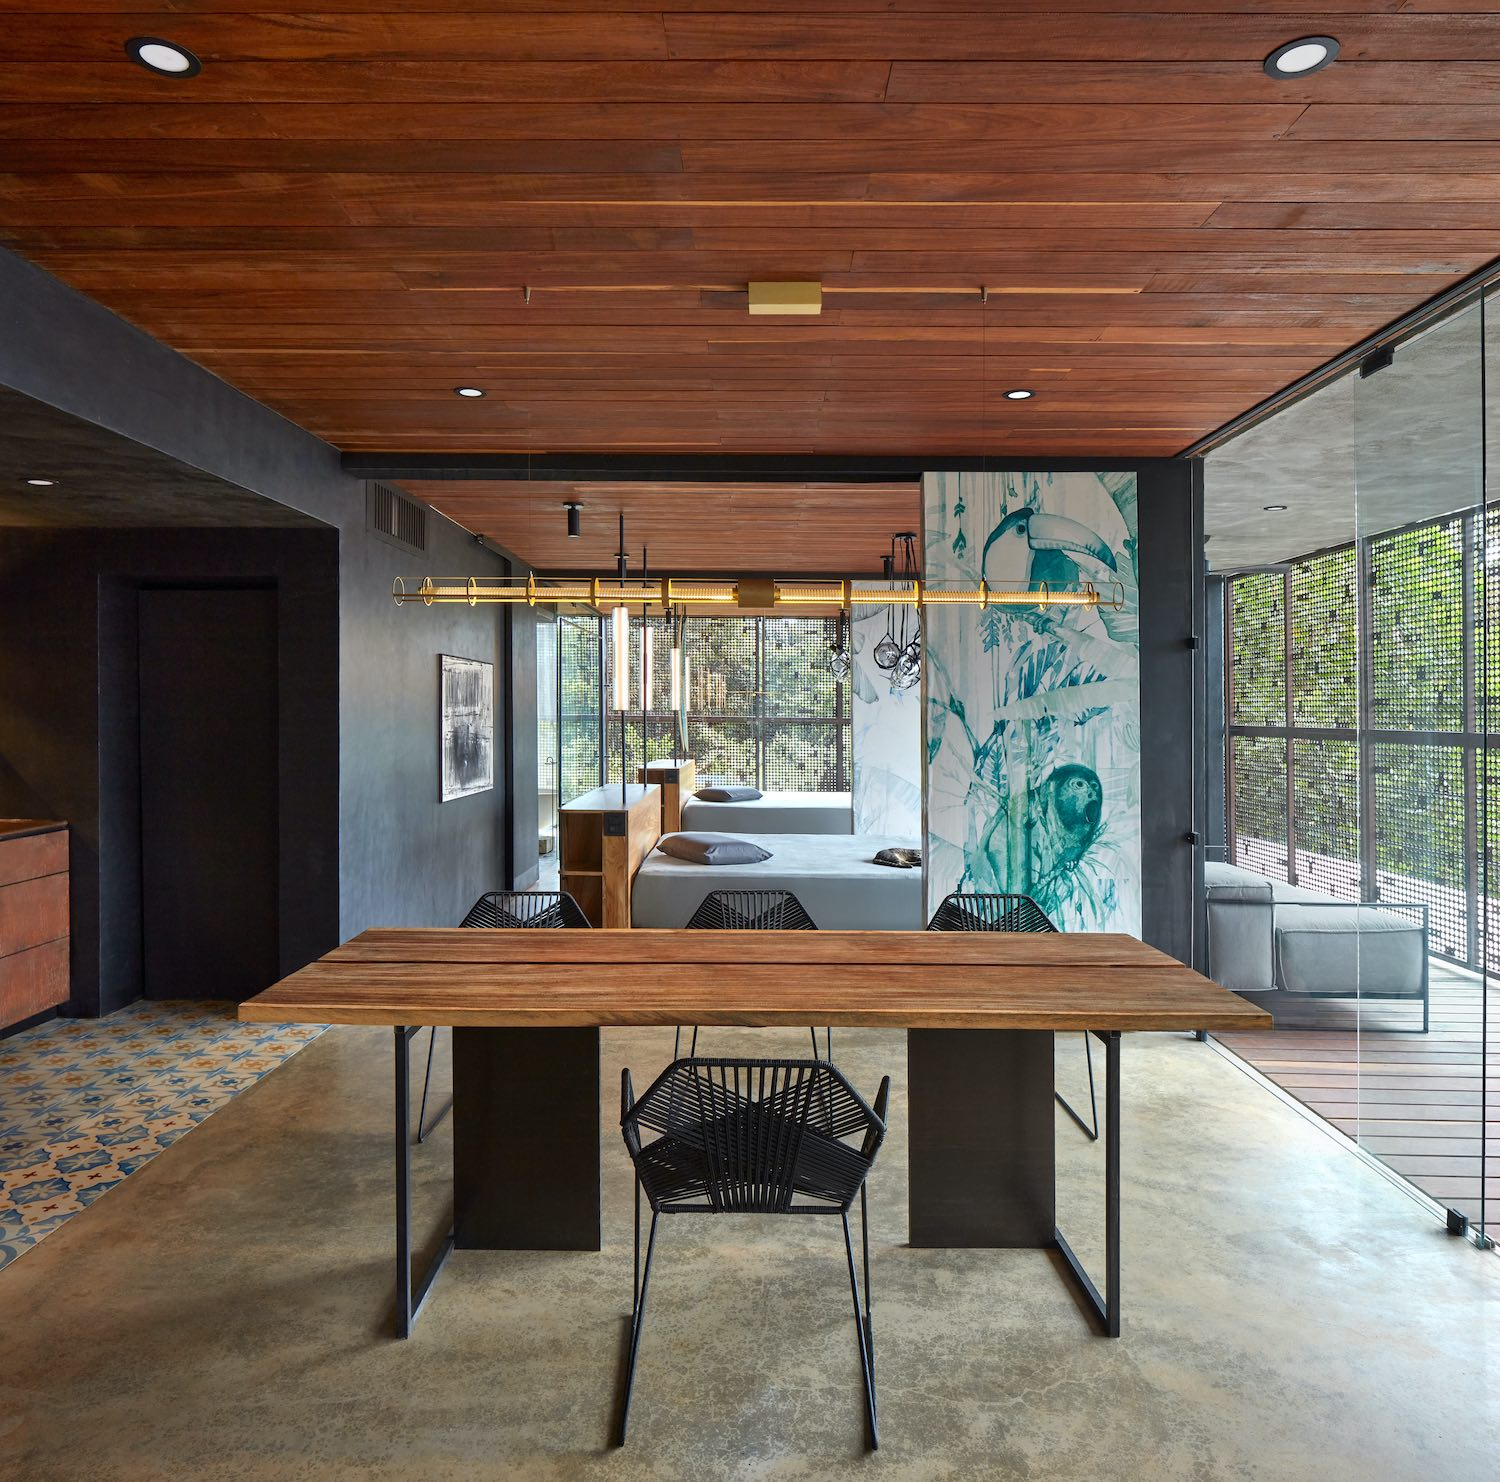 wooden dining table with metallic chairs